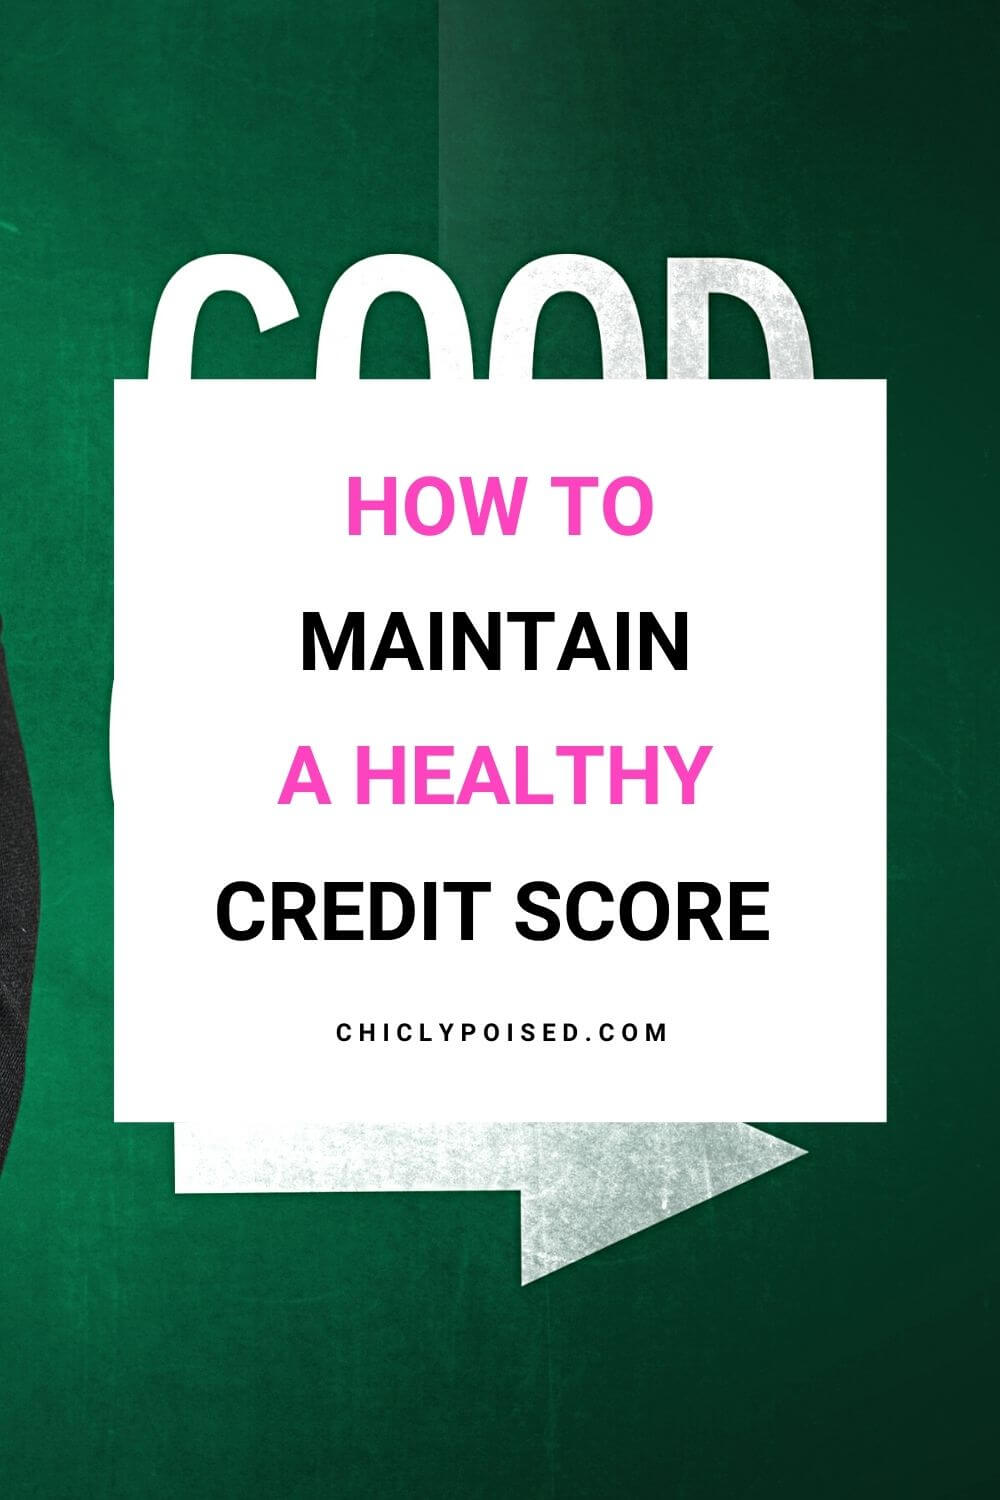 Credit Score Tips 2 of 3